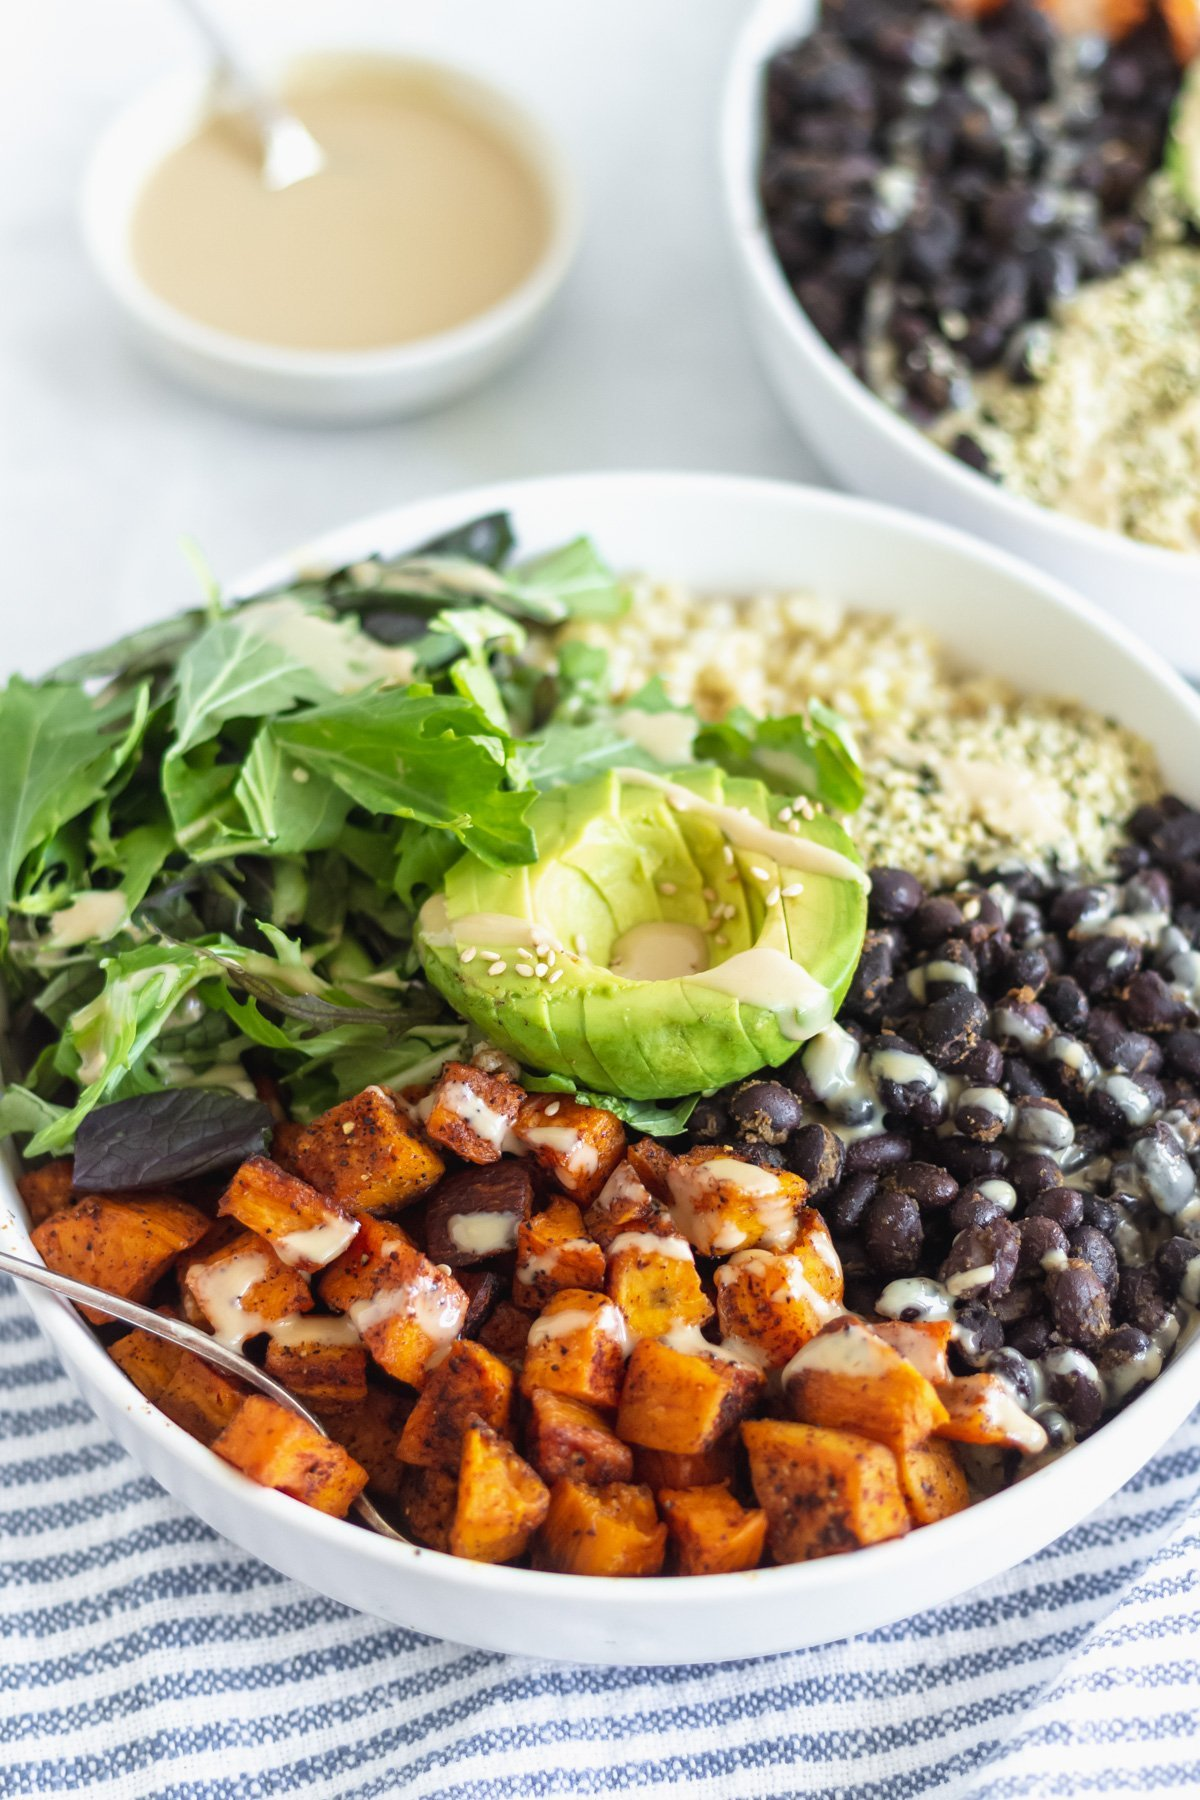 sweet potato, black beans, brown rice, leafy greens, and avocado in a buddha bowl drizzled with tahini dressing